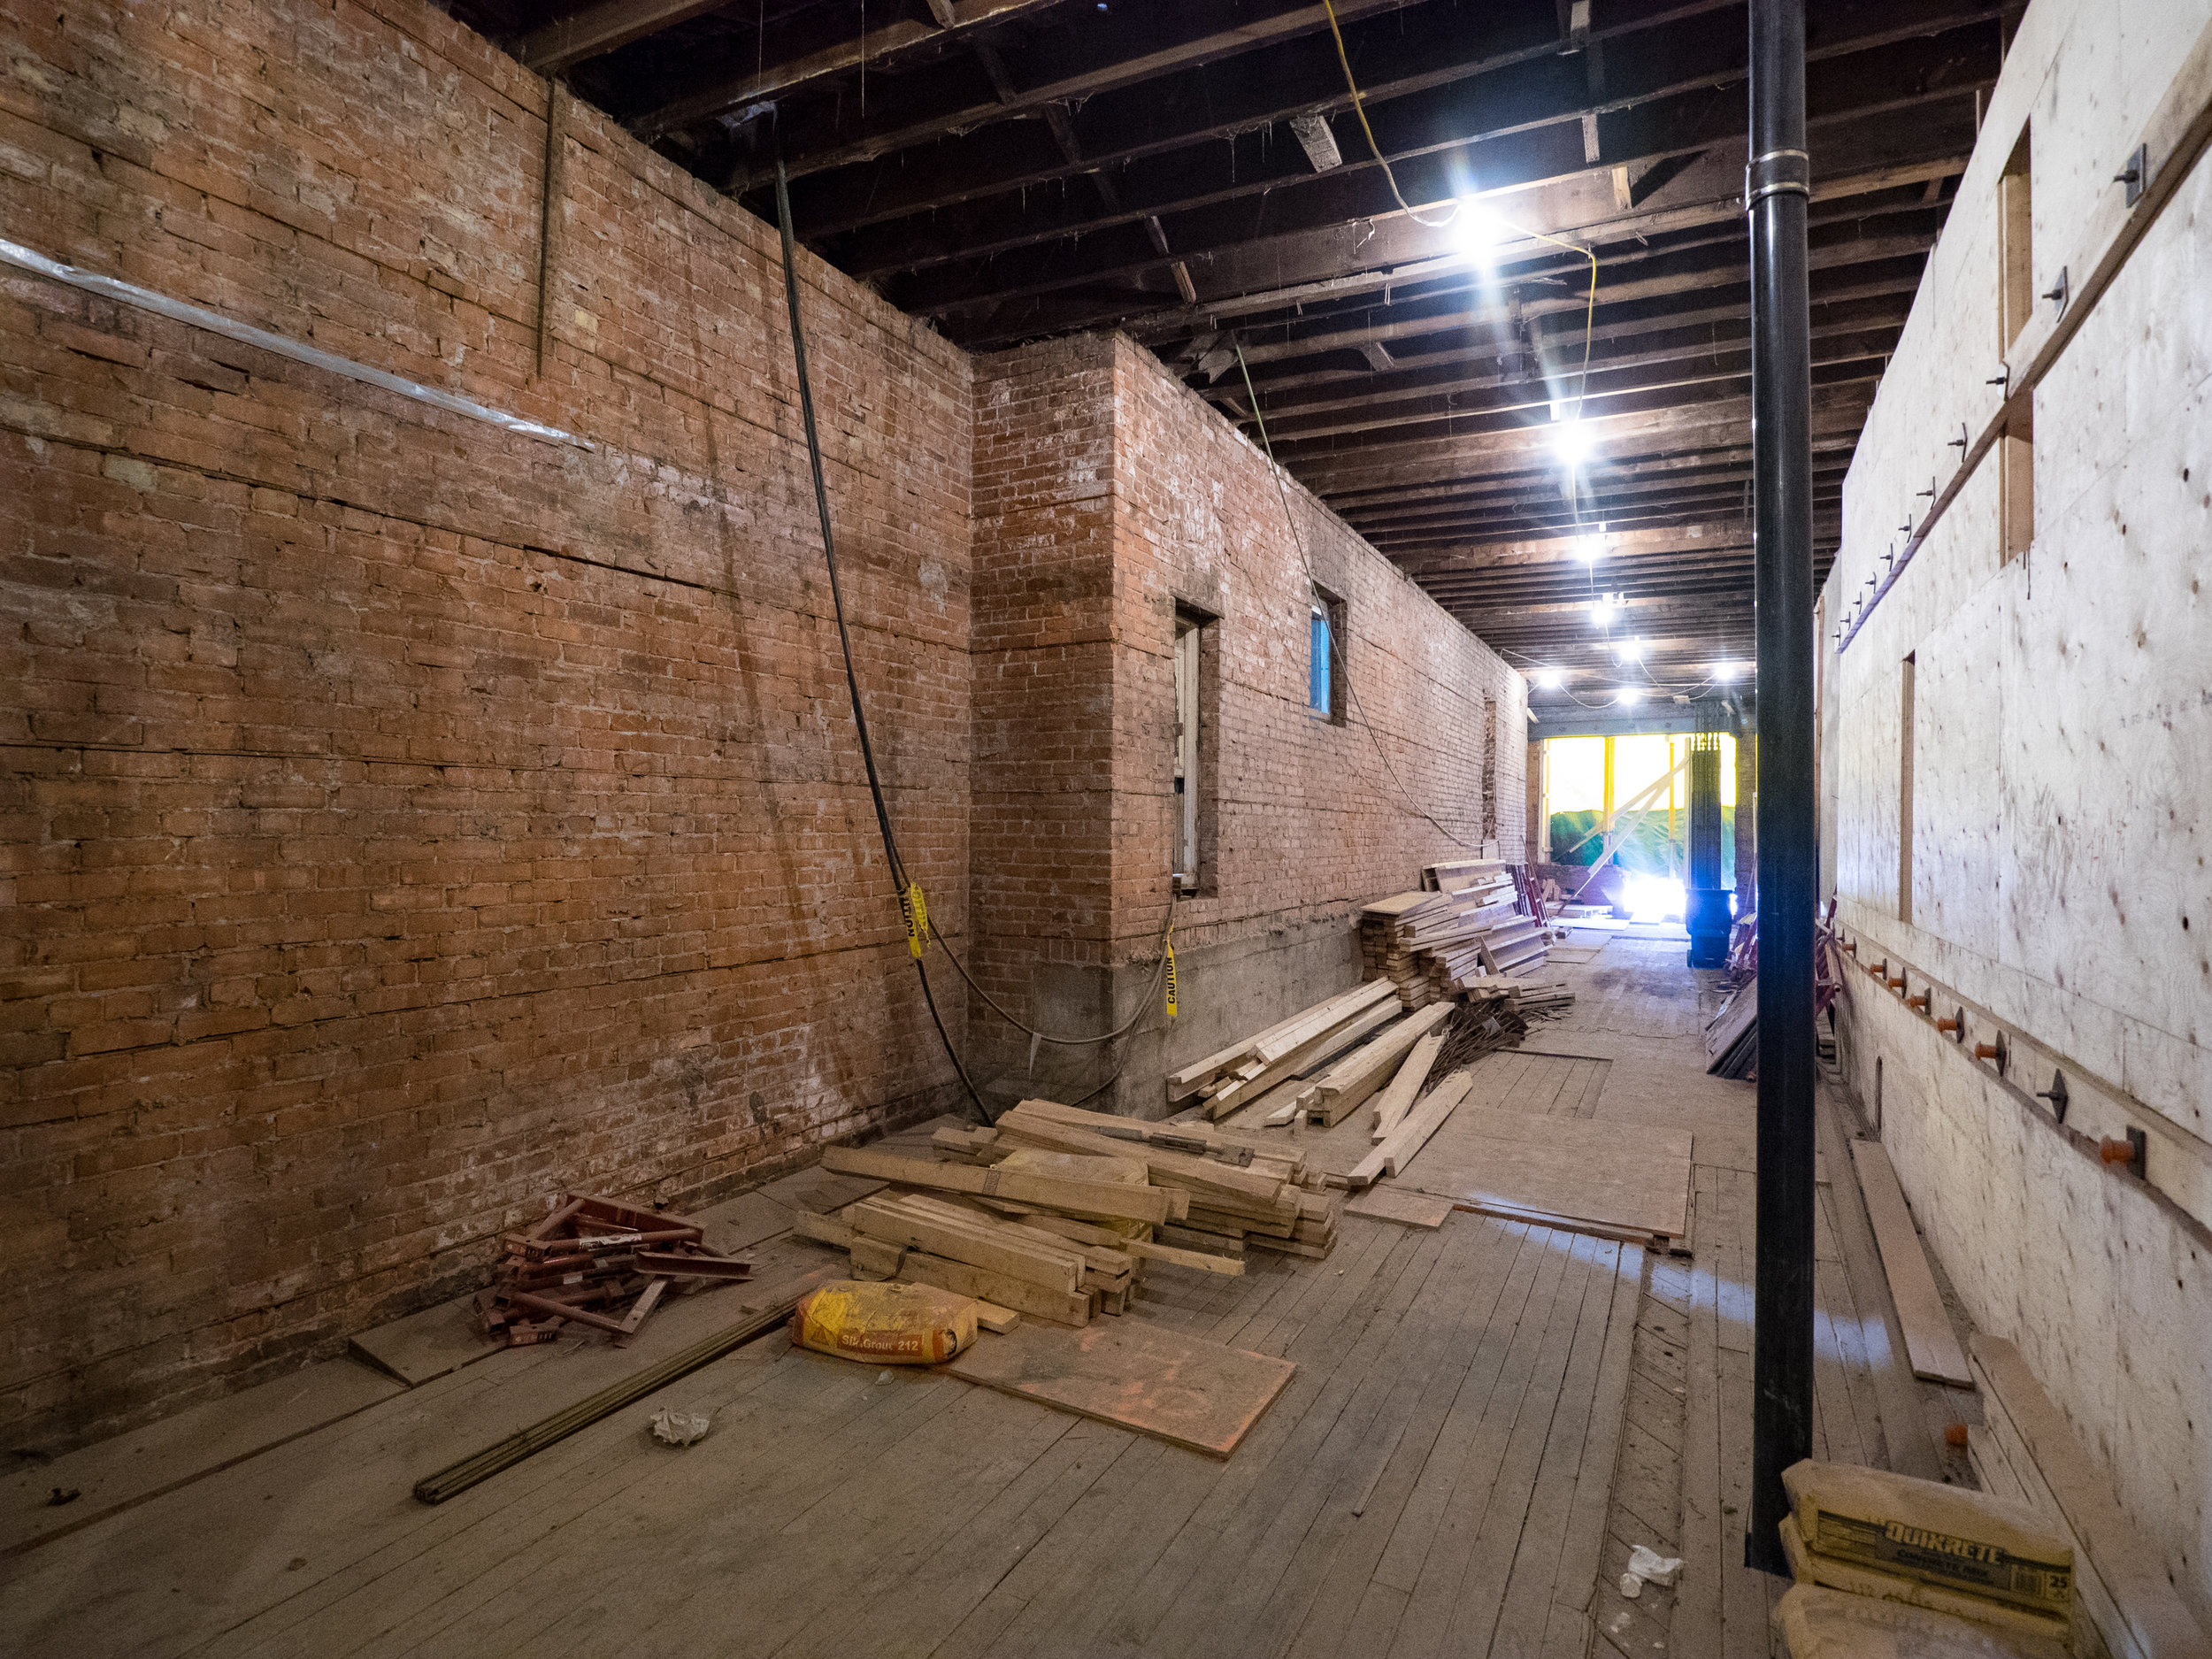 Inside the older of the two building halves, photo by Dave Sutherland